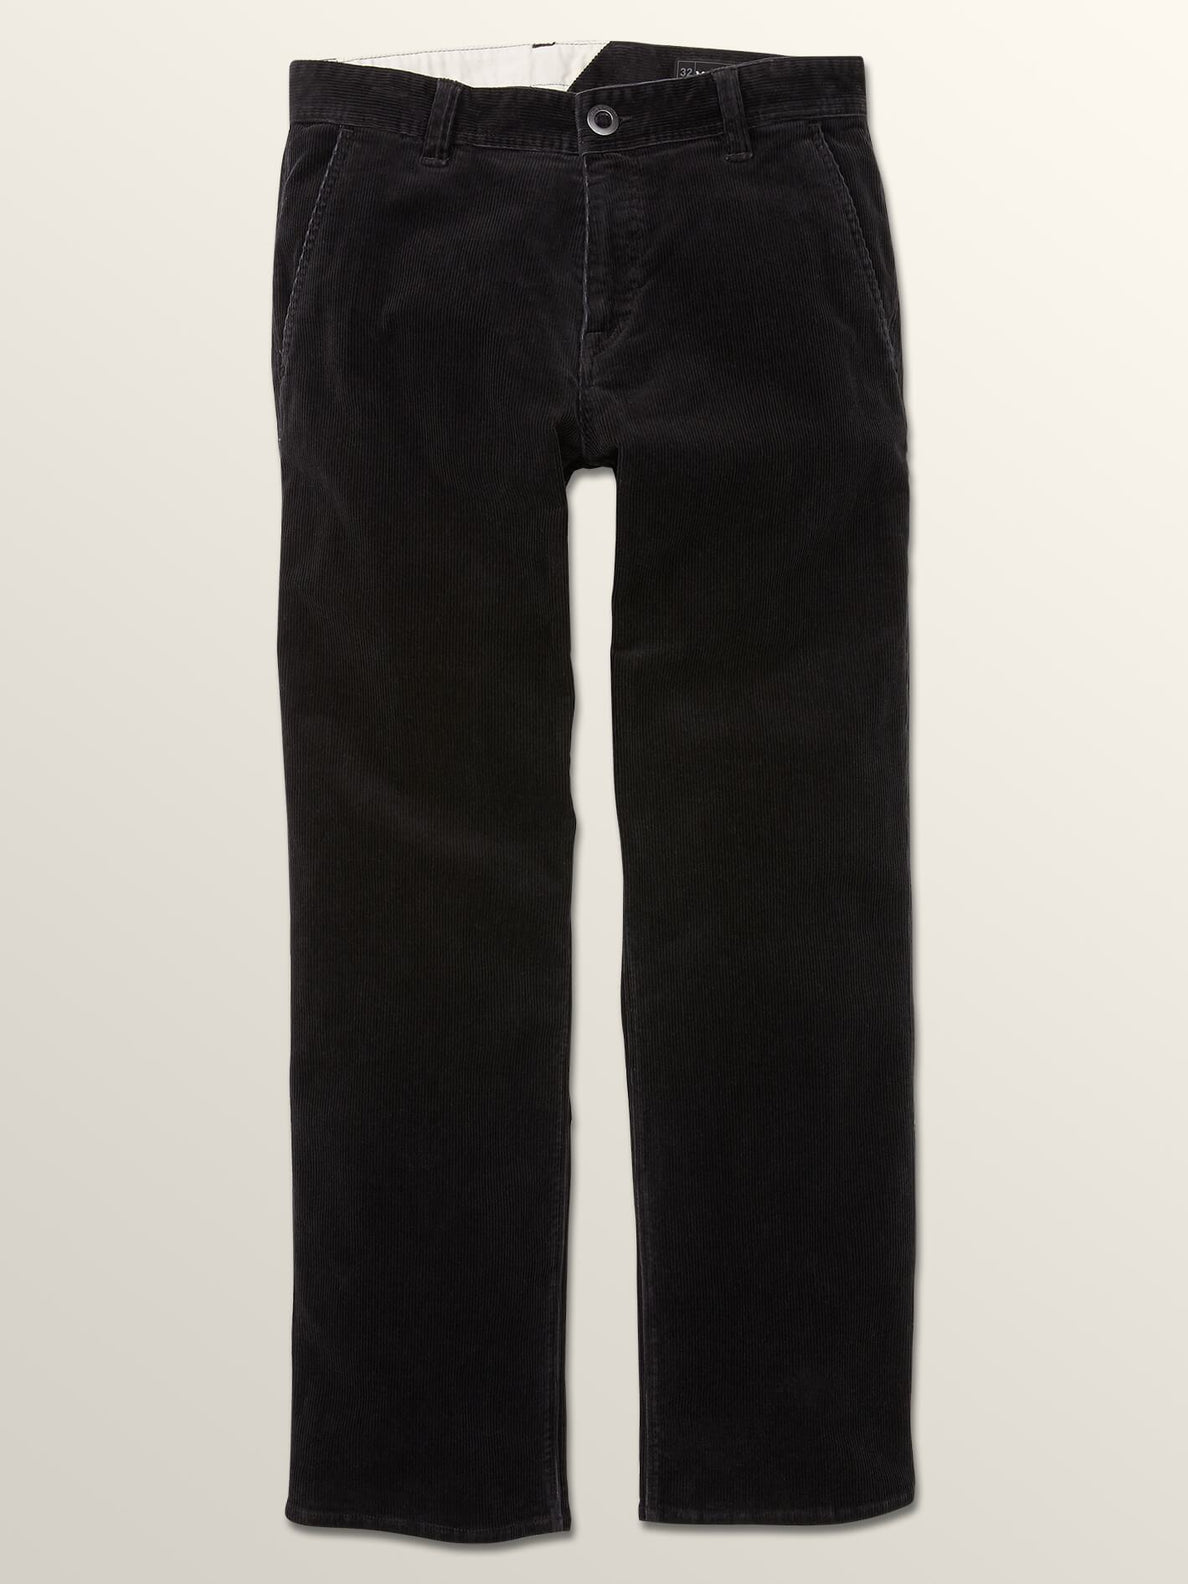 Thrifter Plus Chino Pants - Truly Vintage Black